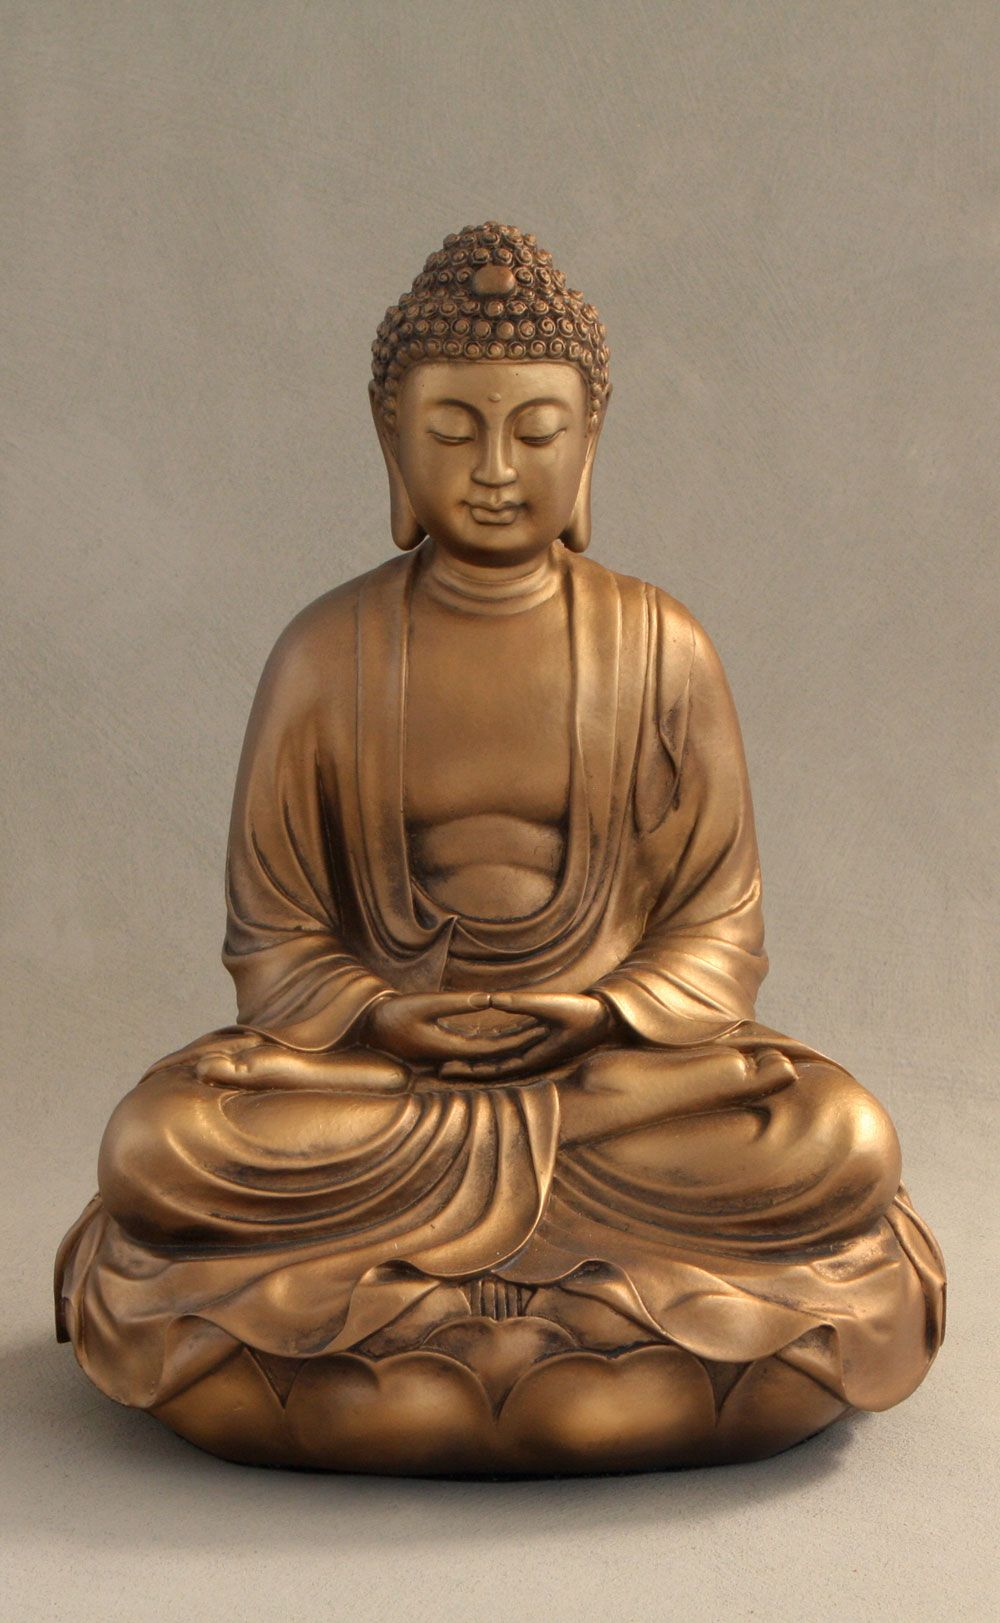 Buddha On Lotus Statue In Bronze Color 11 5 Inches Buddha Statue Decor Buddha Buddhism Statue